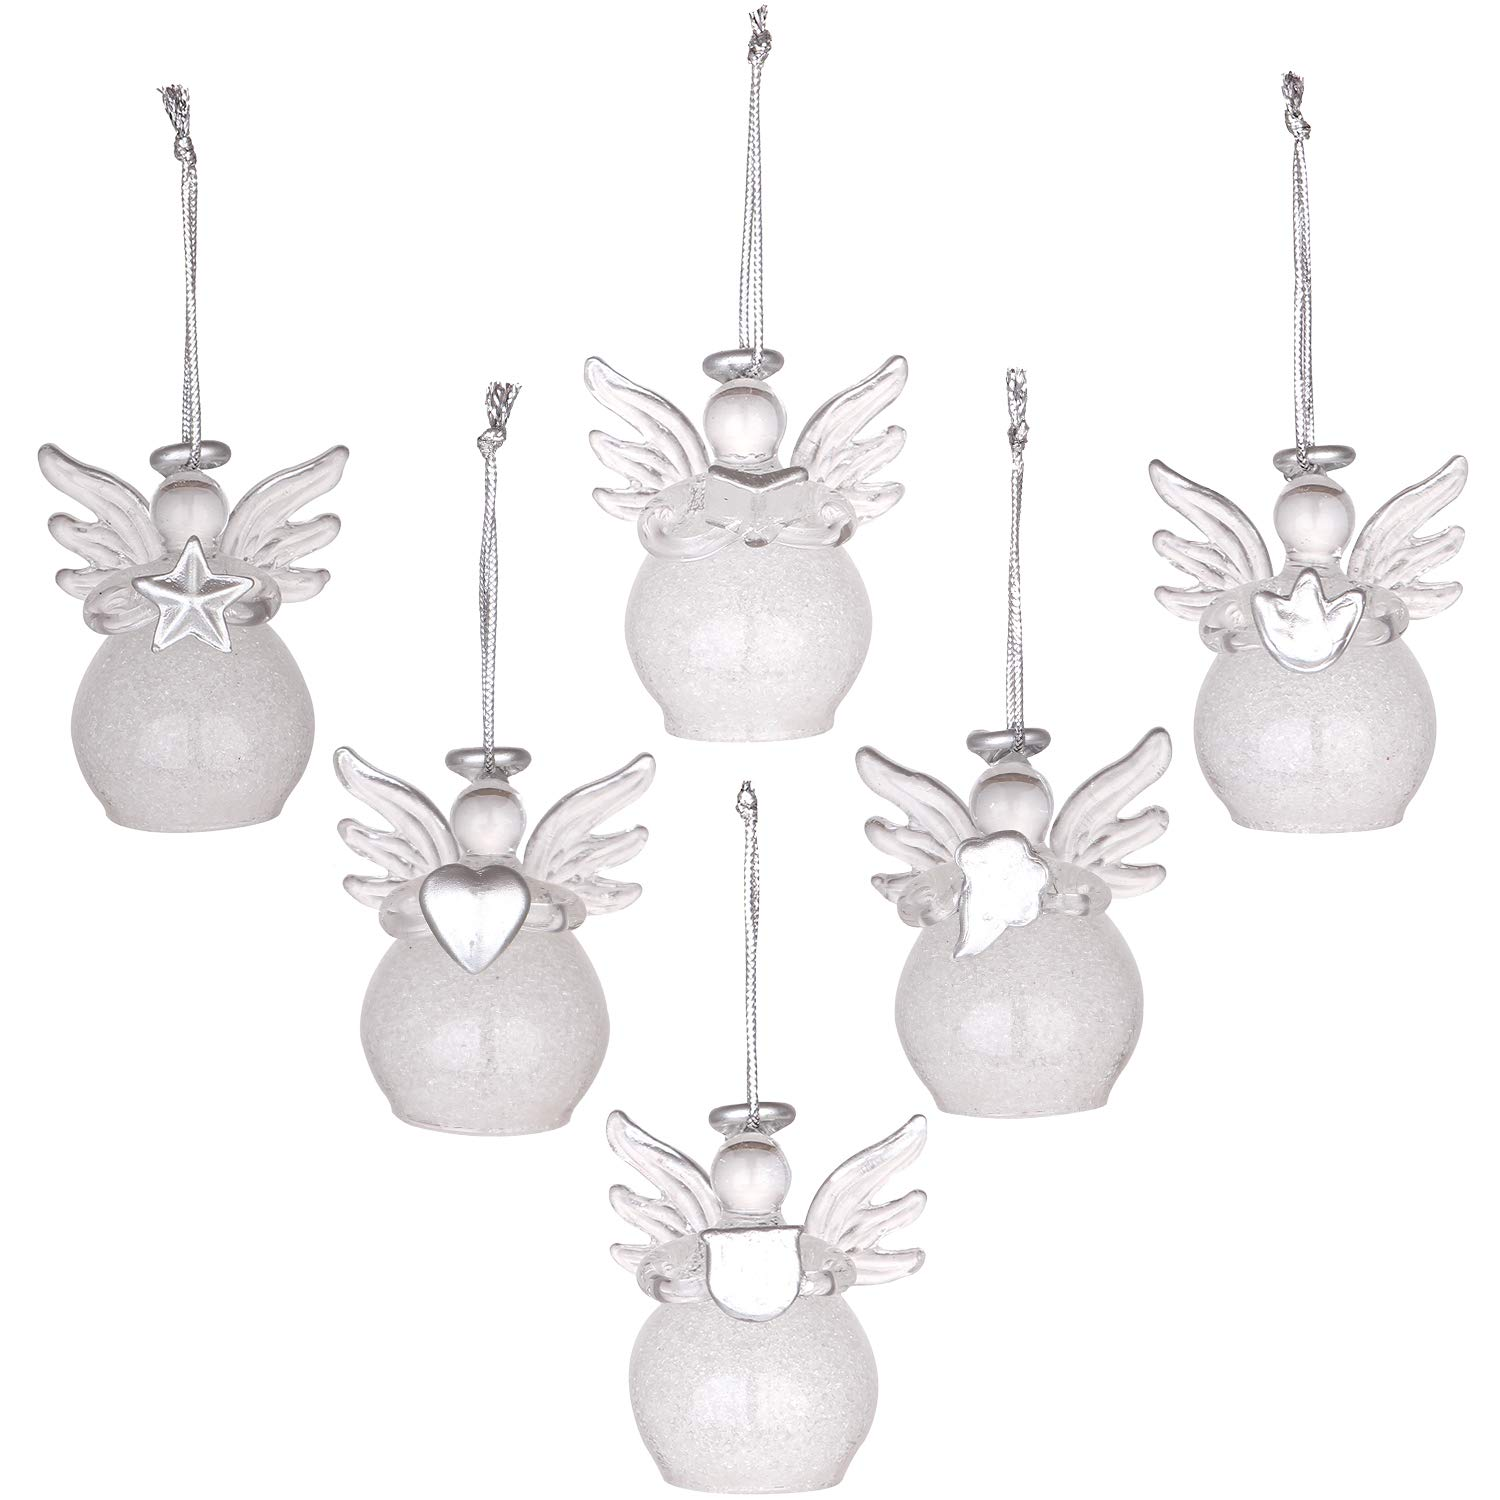 Sea Team Mini Sized Clear Glass Angel Ornaments for Christmas Tree Decorations, 50mm/1.97-inch, Set of 12 (Silver) ST18-ANGEL12B-SILVER